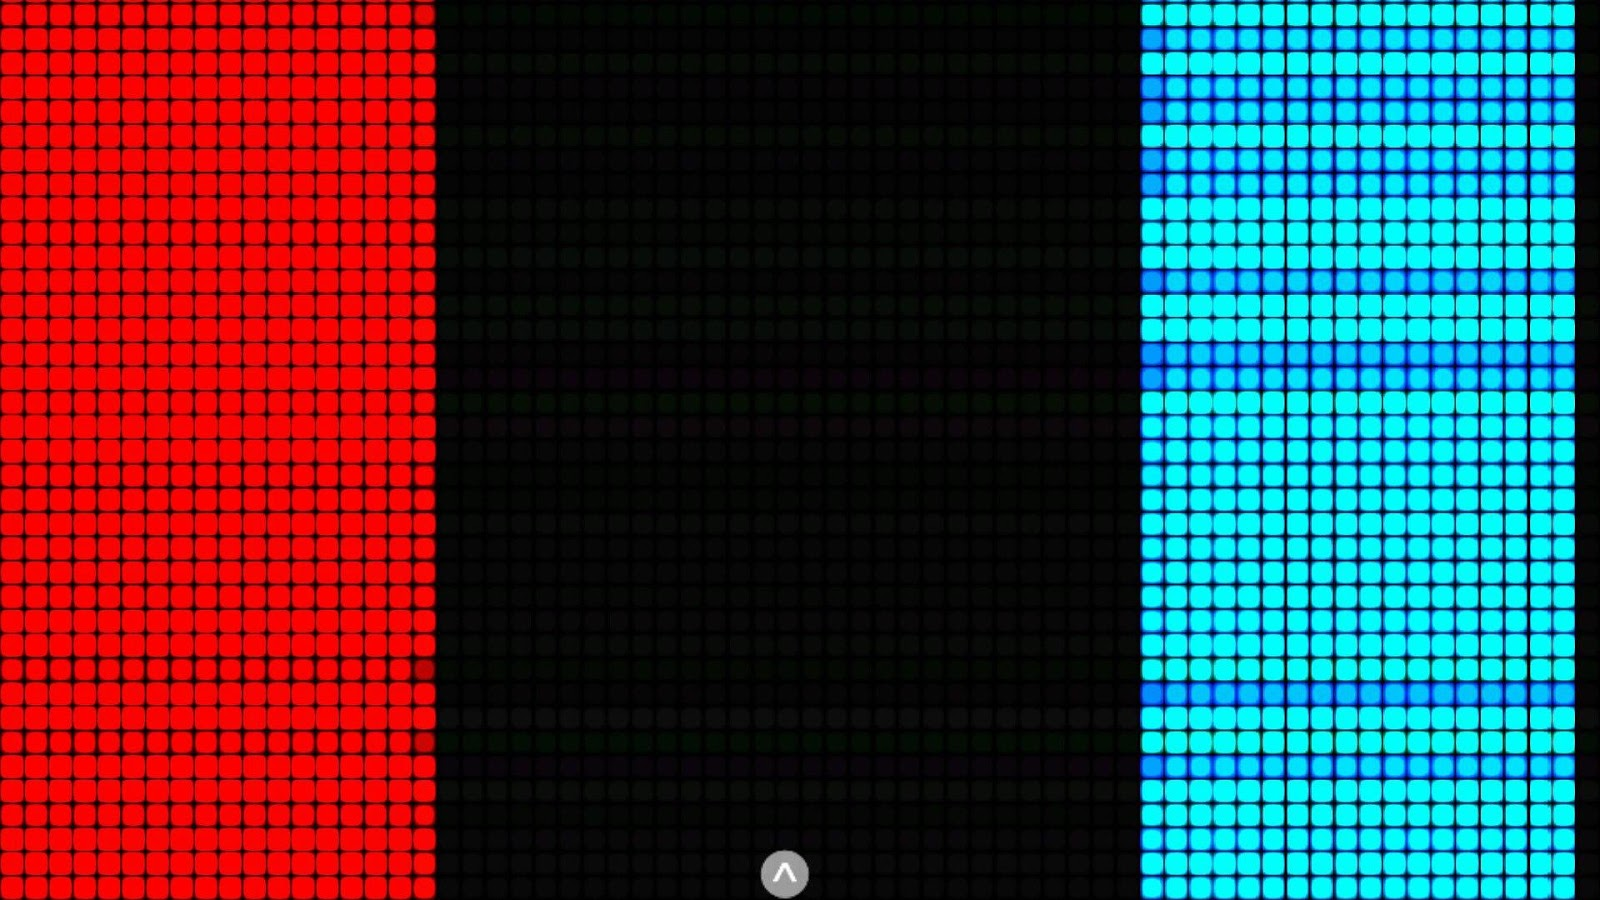 Real Police LED Lights HD 2 APK Download - Android Entertainment Apps for Red Led Light Texture  150ifm